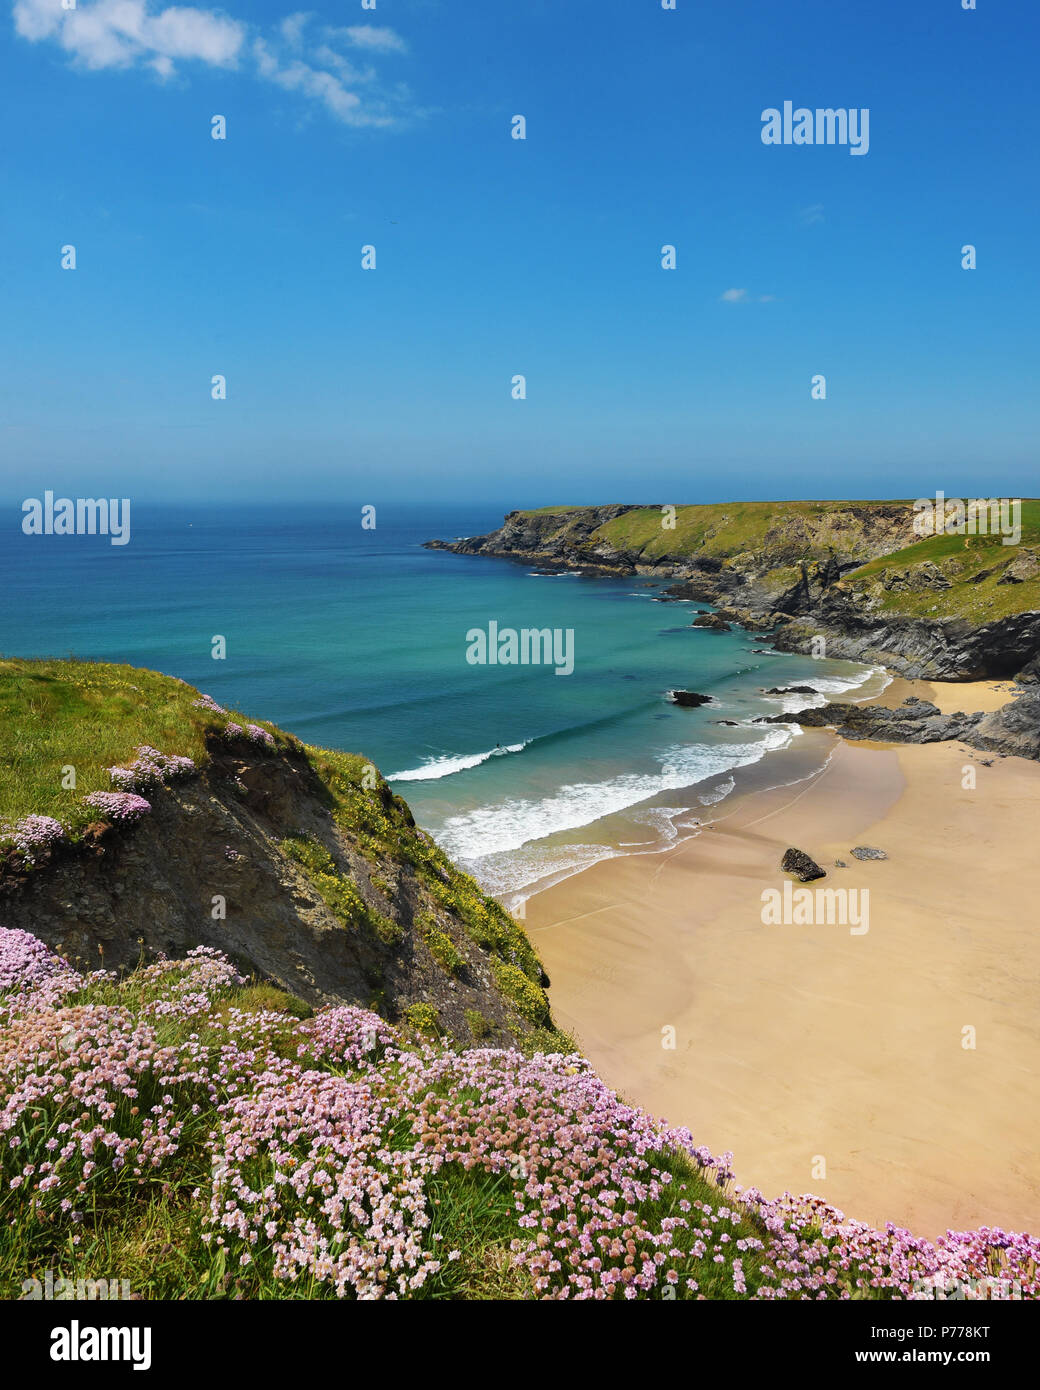 Carnewas at Bedruthan, national trust site, wildflowers in summer - Stock Image